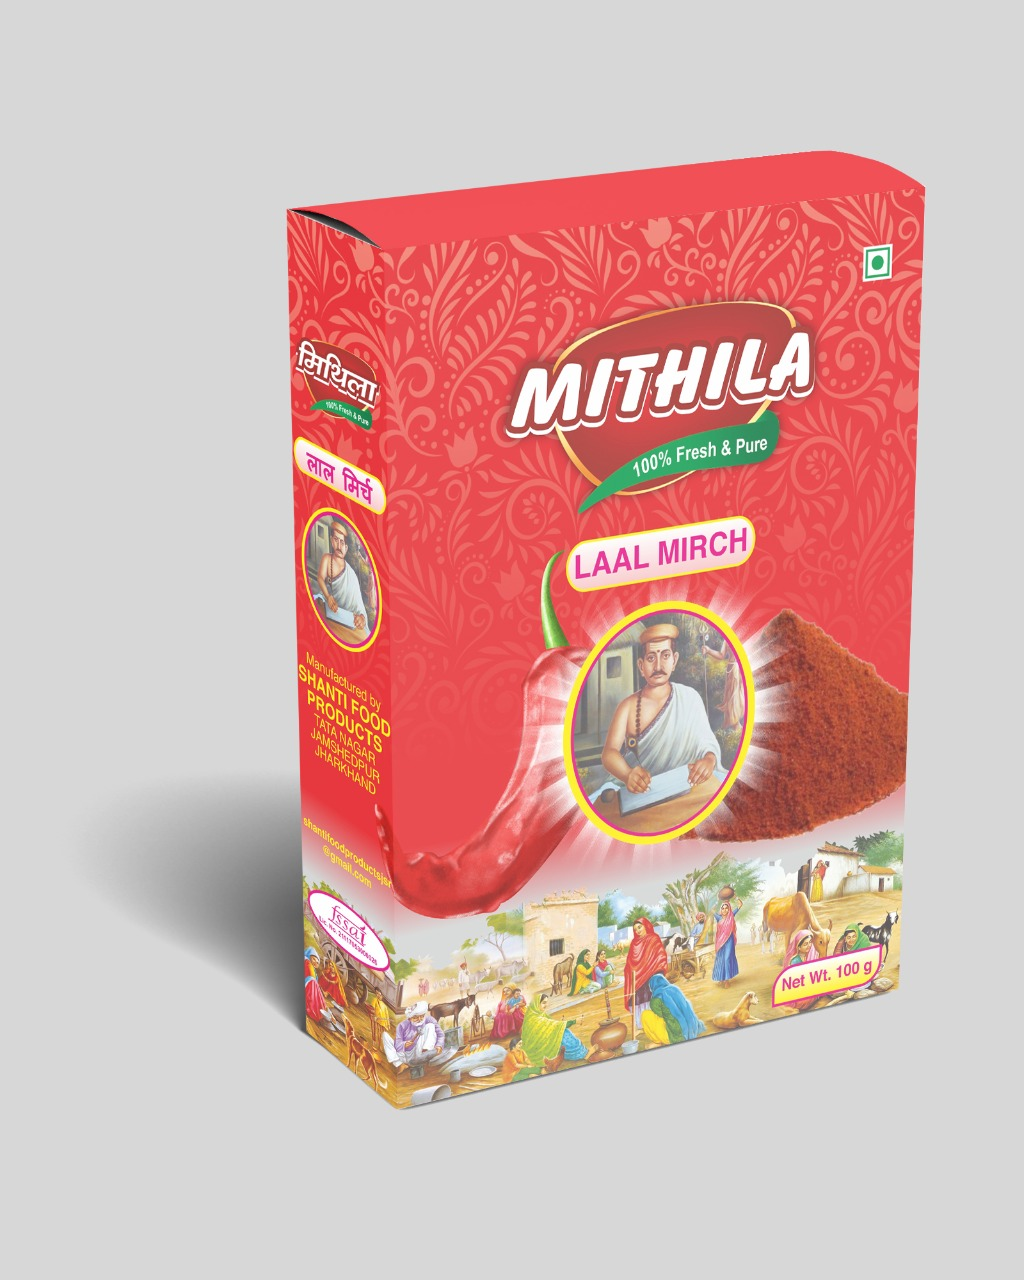 Mithila mirch powder